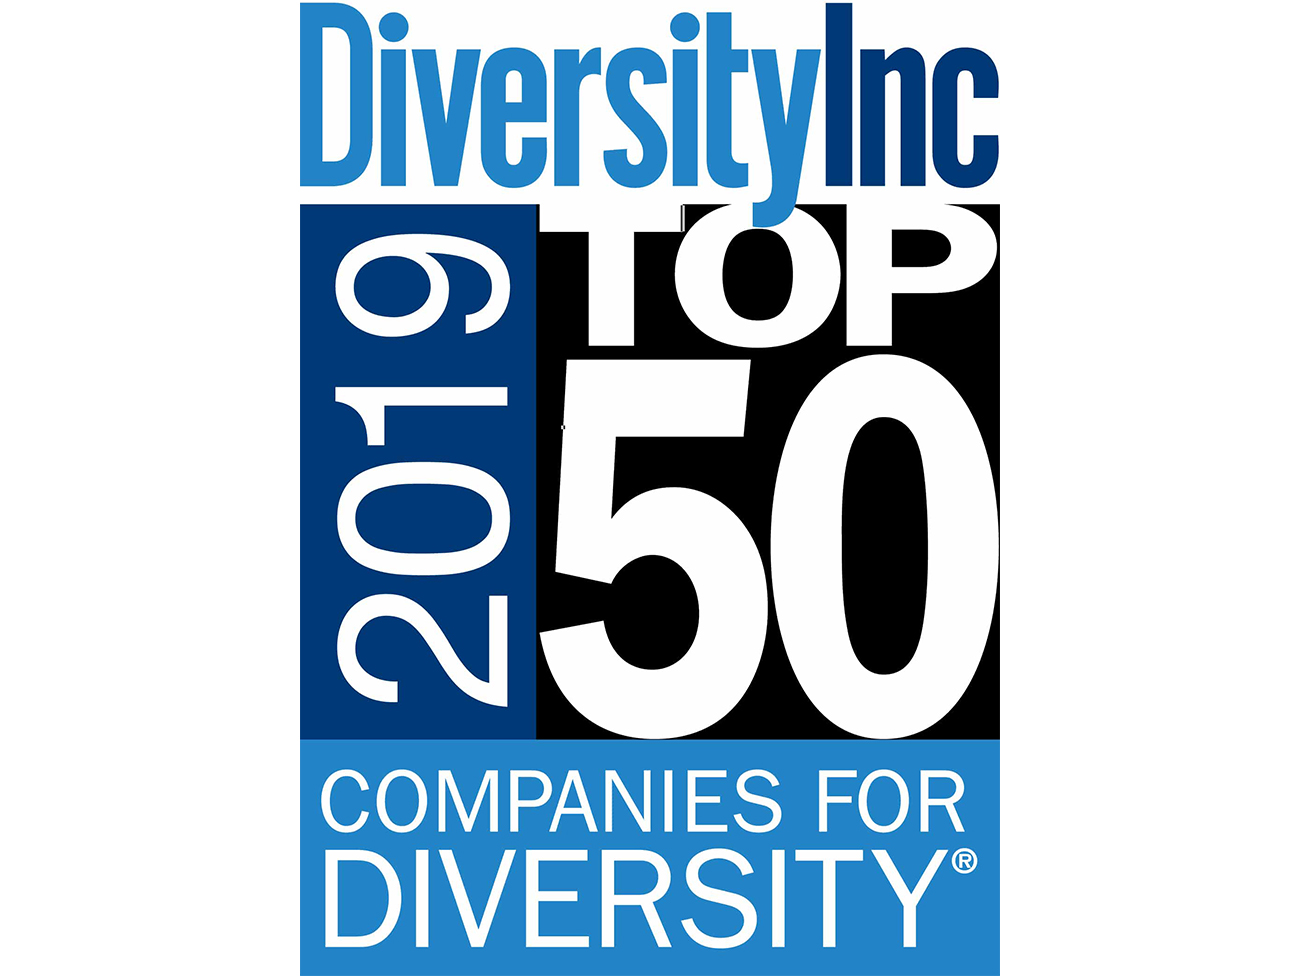 Once again named to DiversityInc Top 50 Hall of Fame